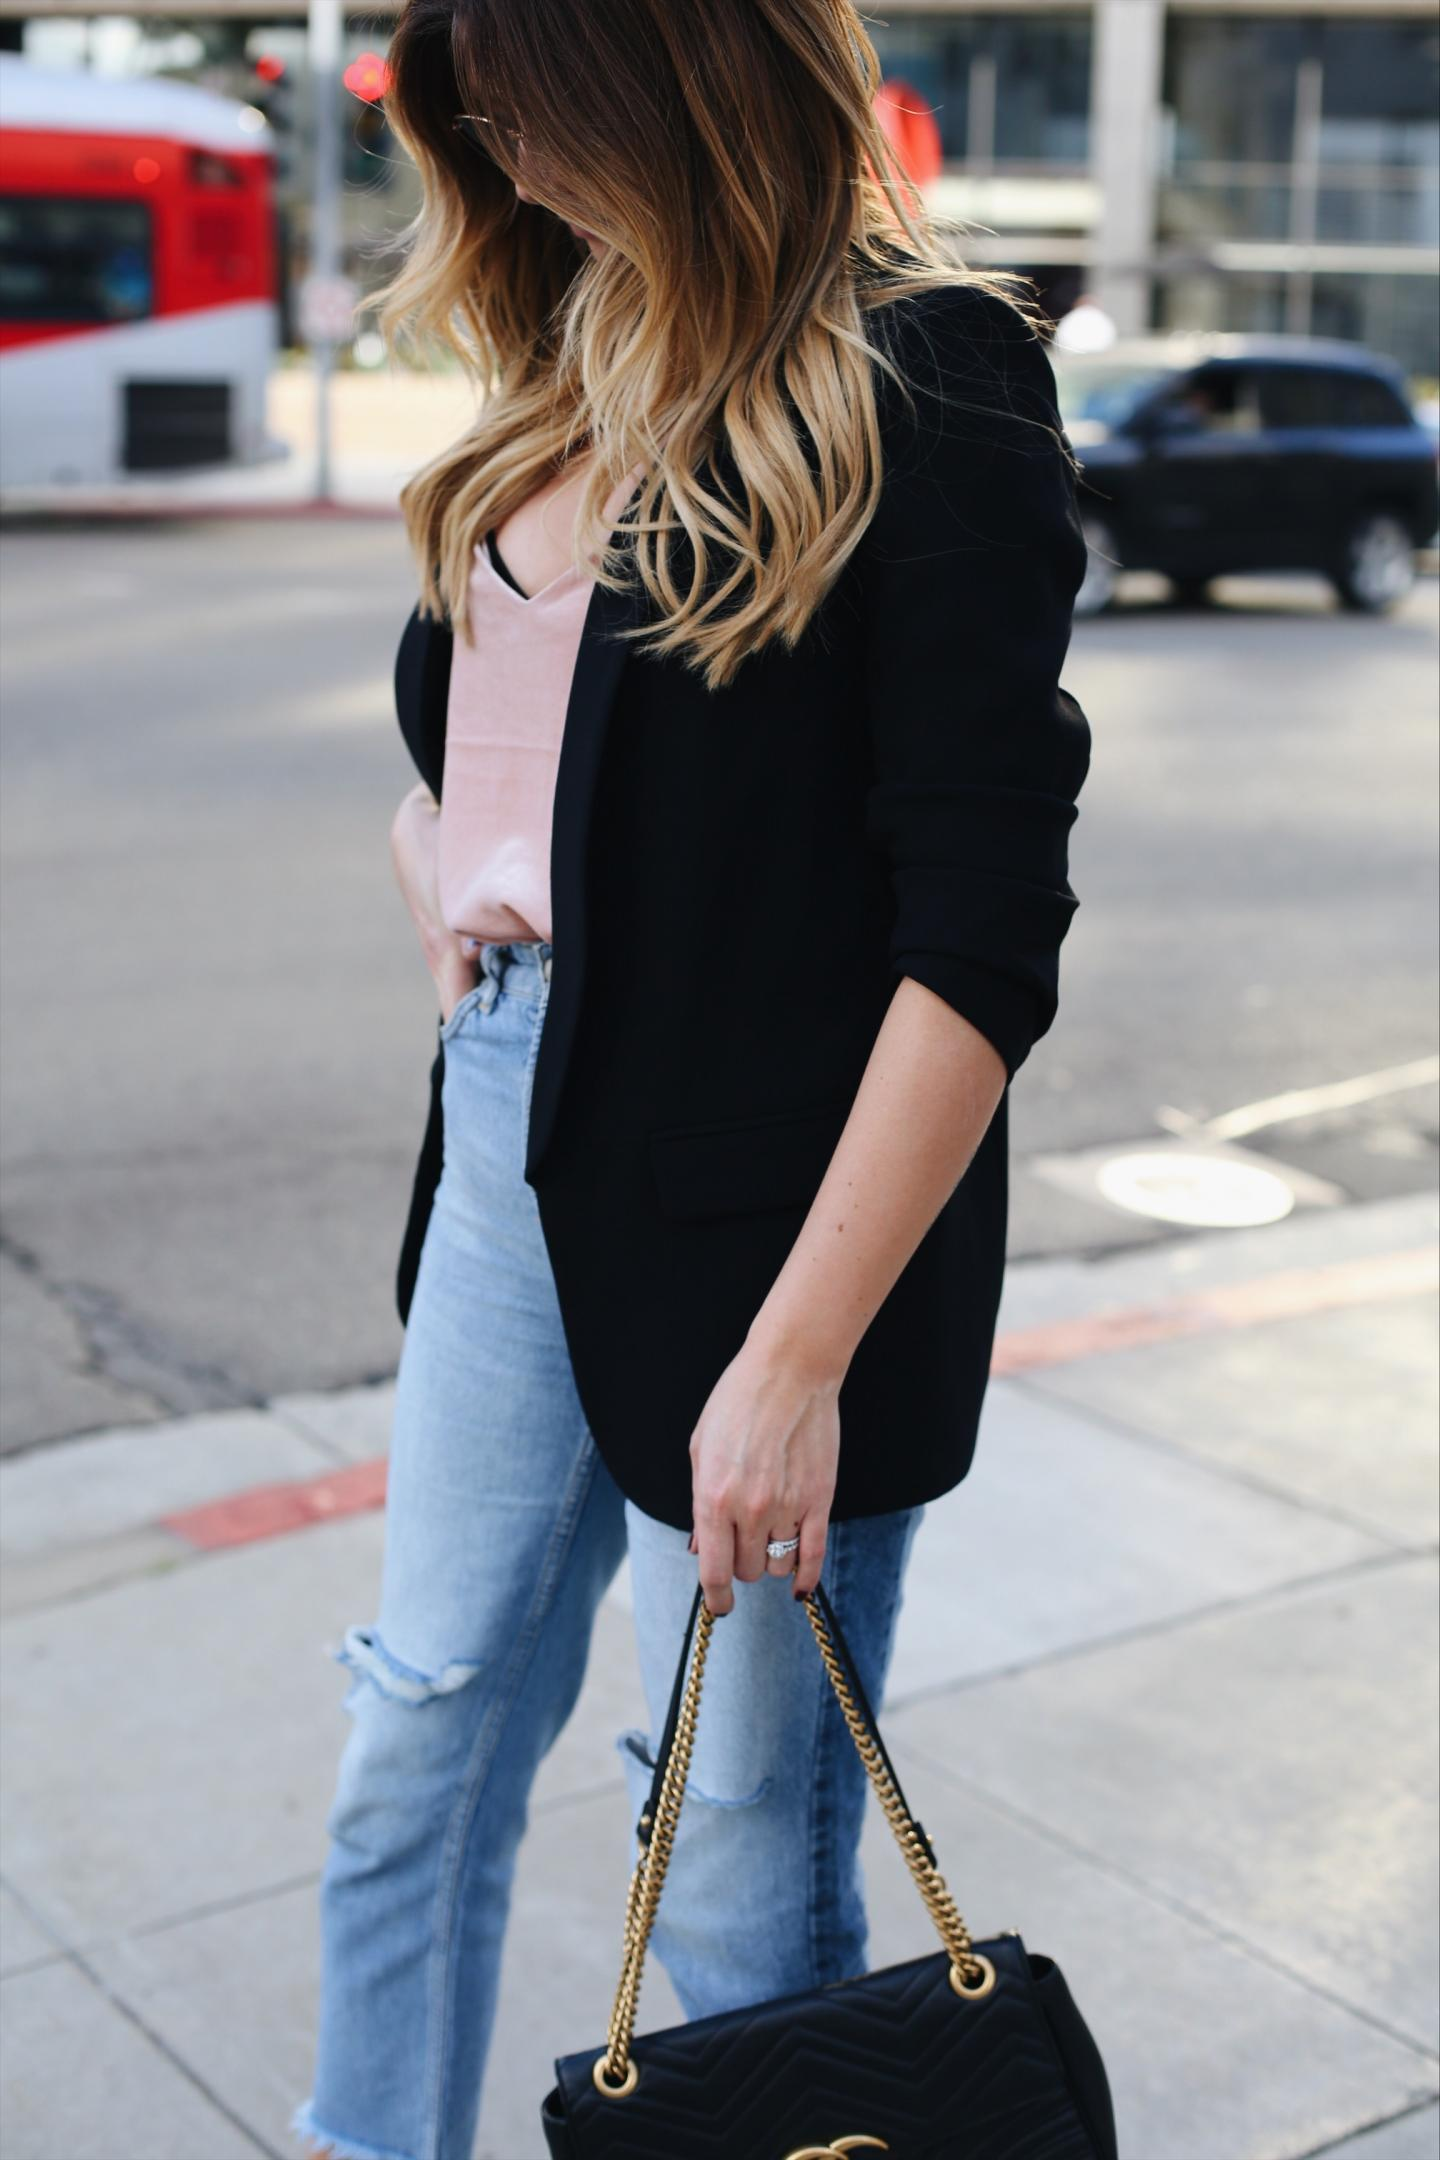 Emma Hill EJStyle wears pink velvet came top, black blazer, bleach wash ripped jeans, Gucci Marmont bag in LA